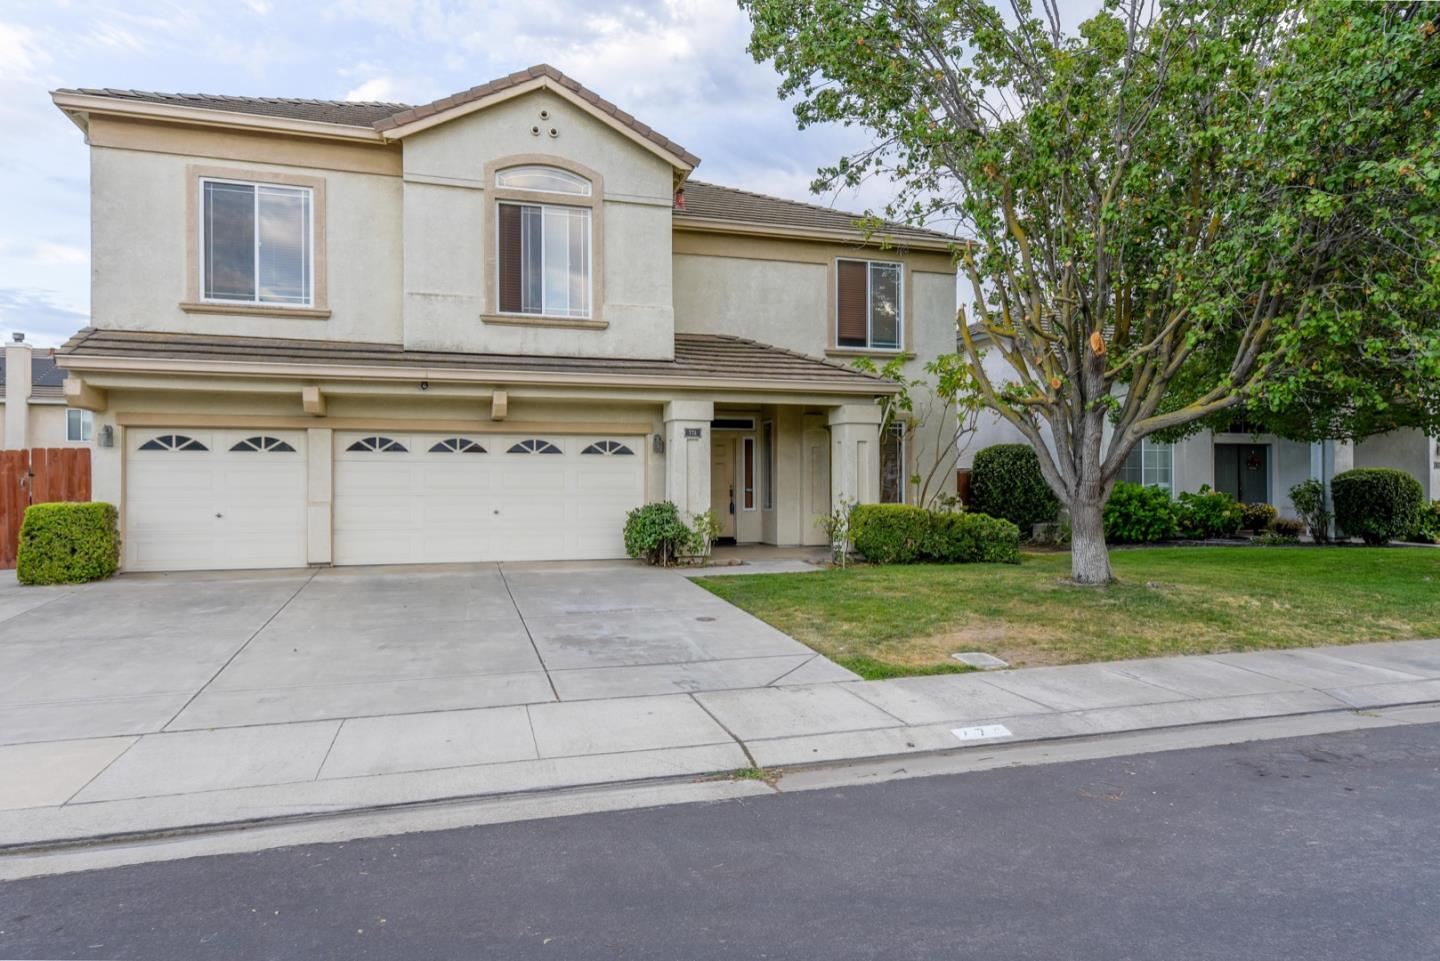 Detail Gallery Image 1 of 19 For 774 Grafton St, Manteca,  CA 95337 - 4 Beds | 3 Baths